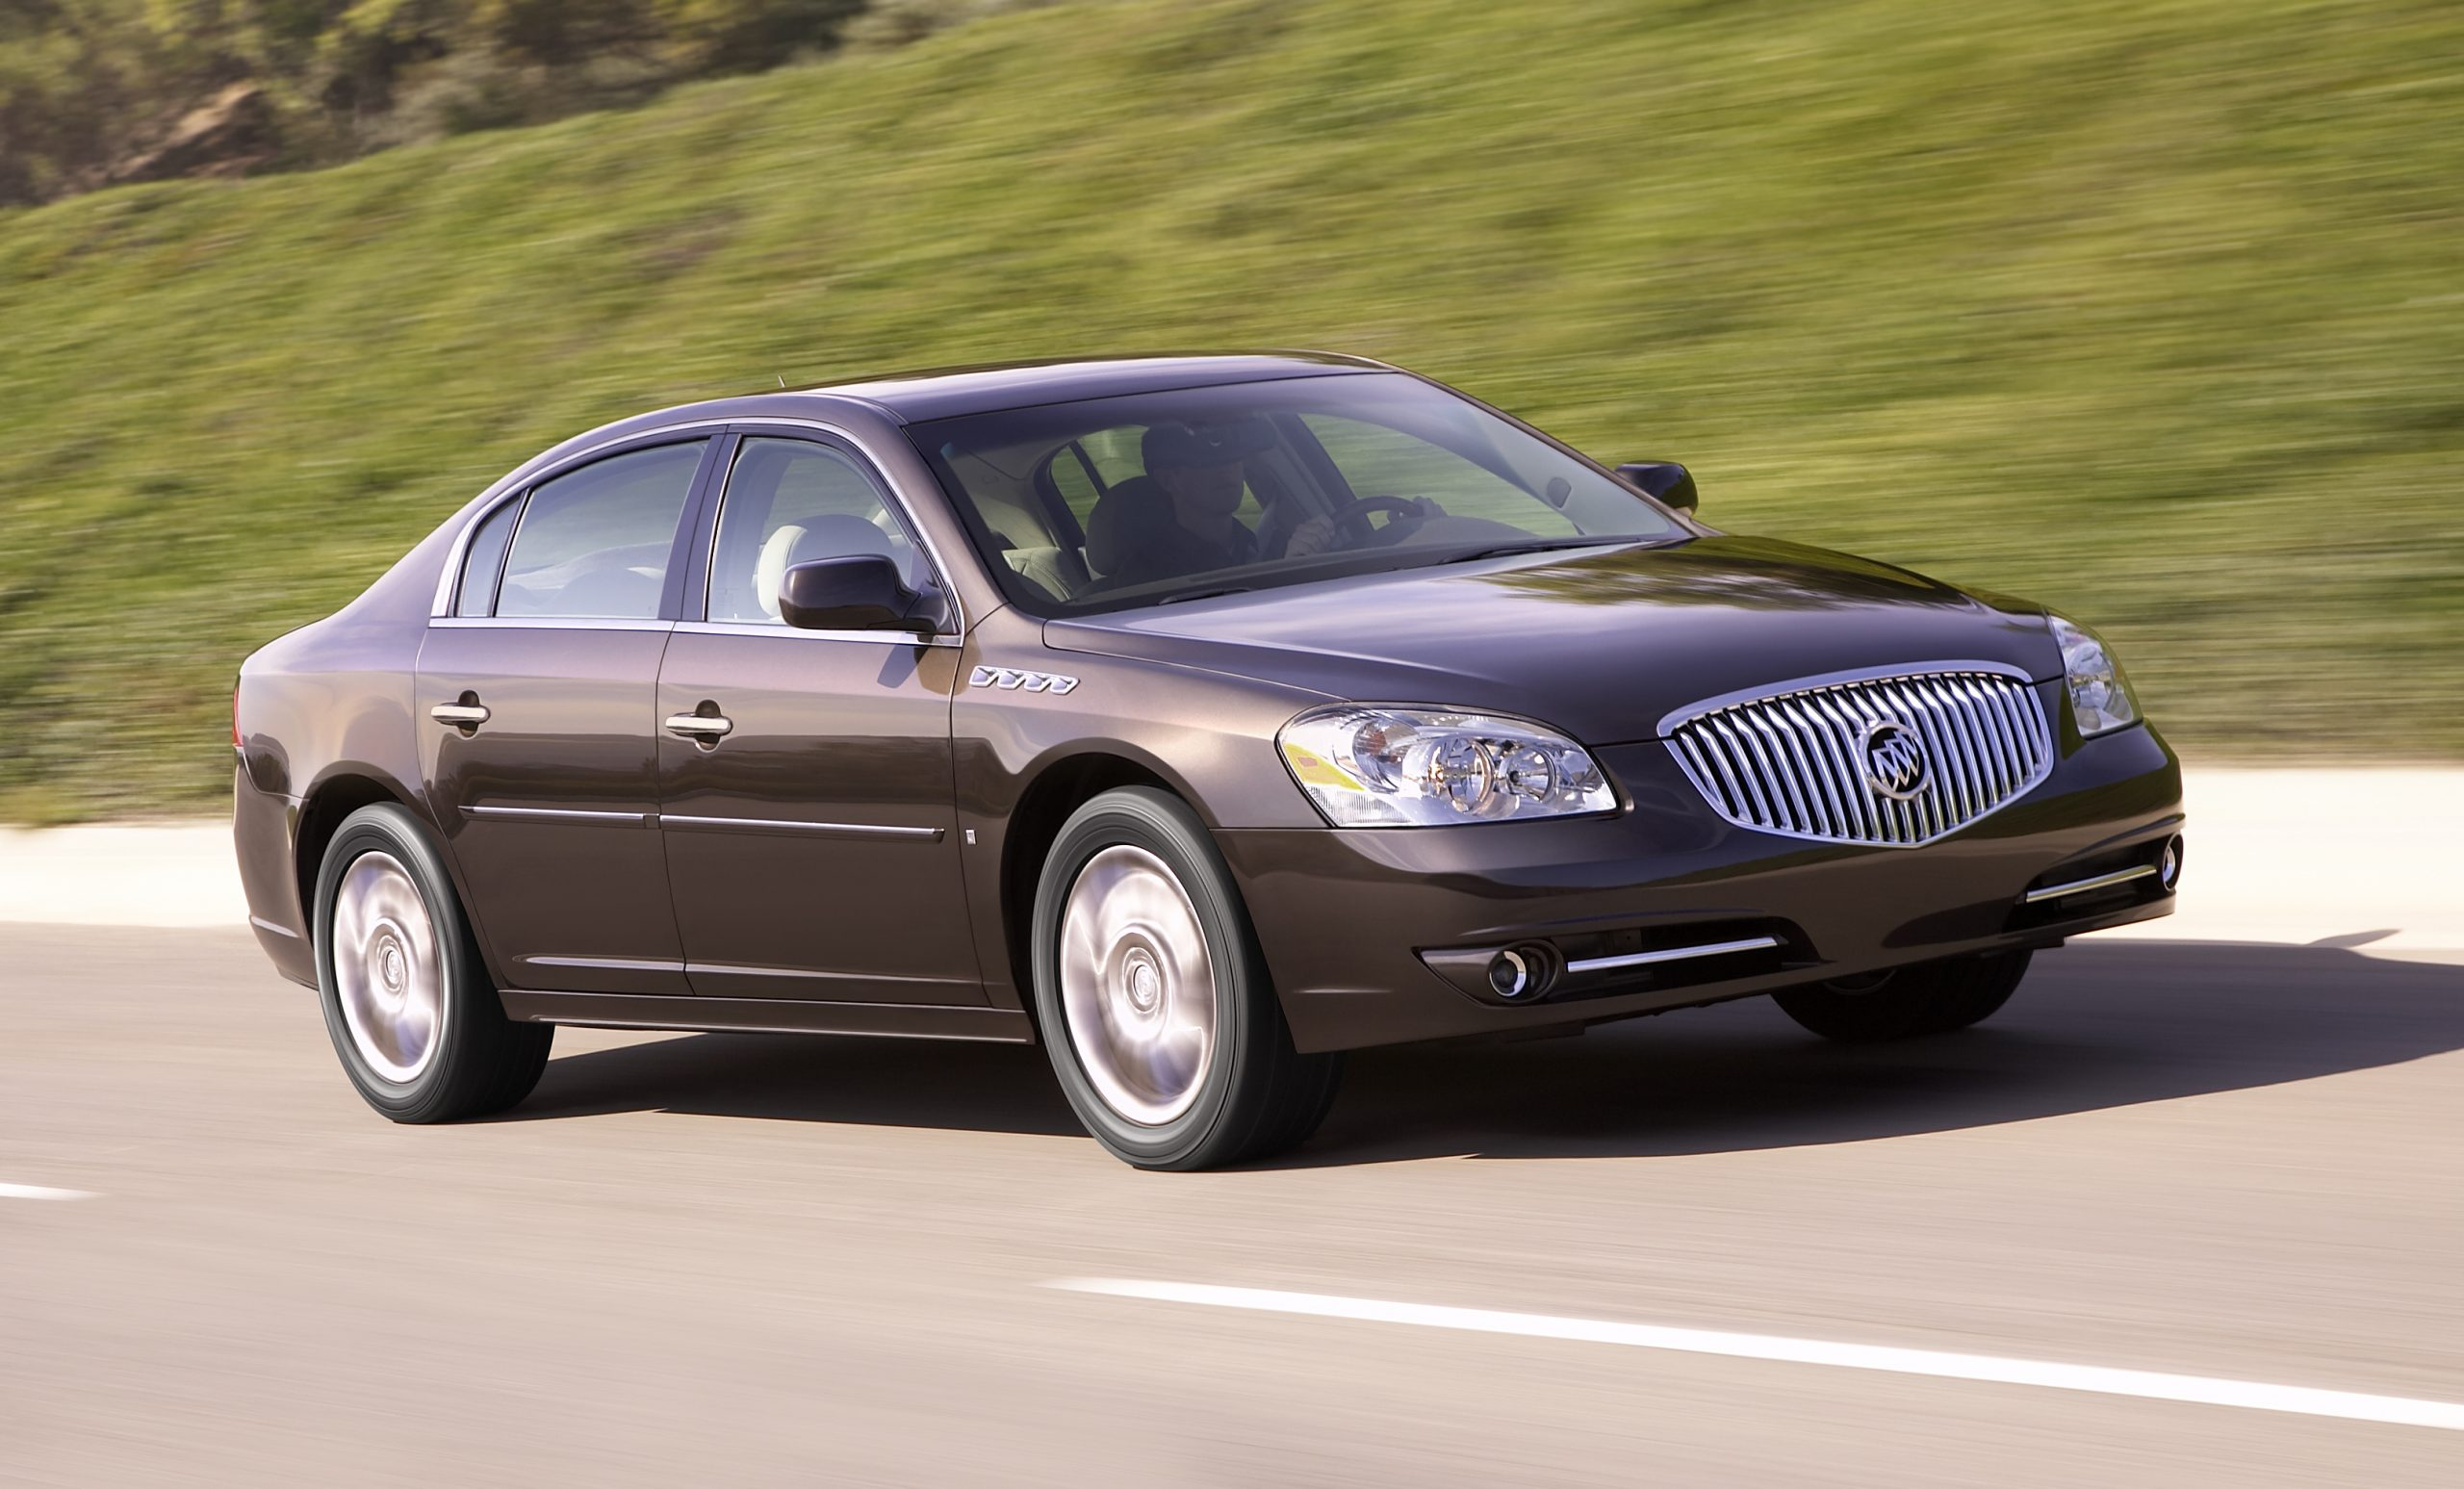 Are You Ready To Wave Goodbye To The Buick Lucerne? | Gm New 2022 Buick Lucerne Tires, Gas Mileage, Length